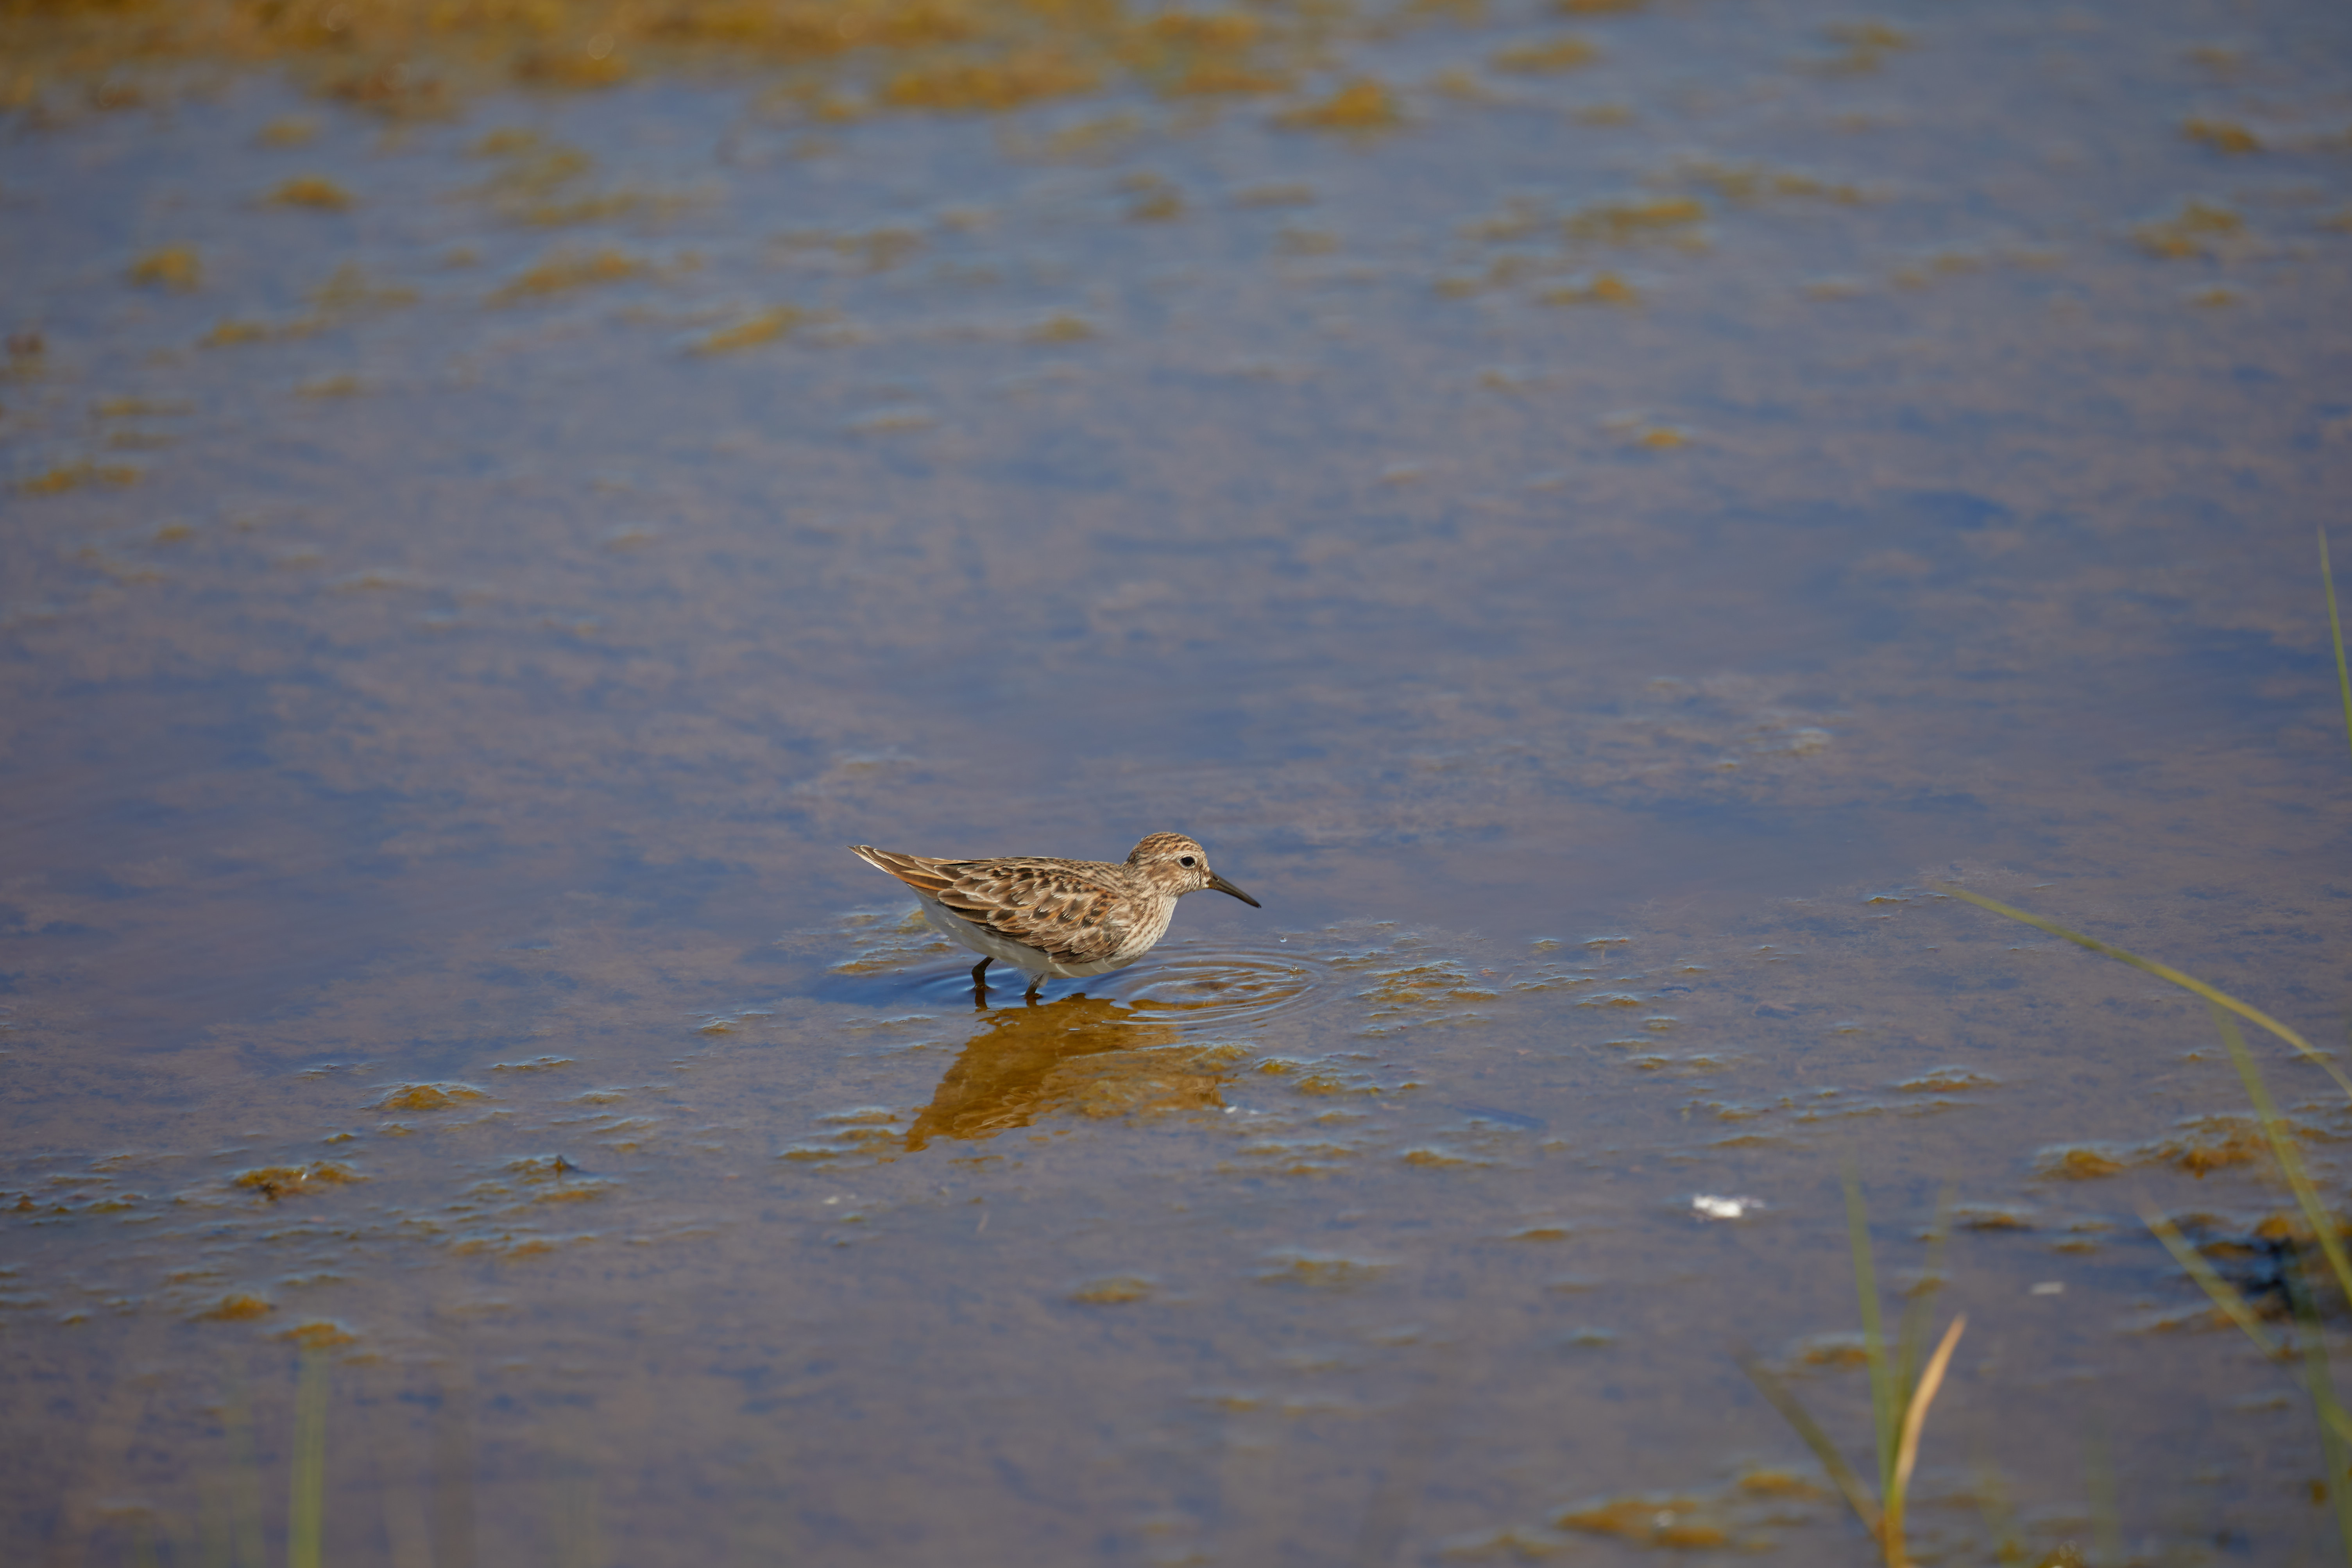 Small brown and grey bird with long beak, in water.